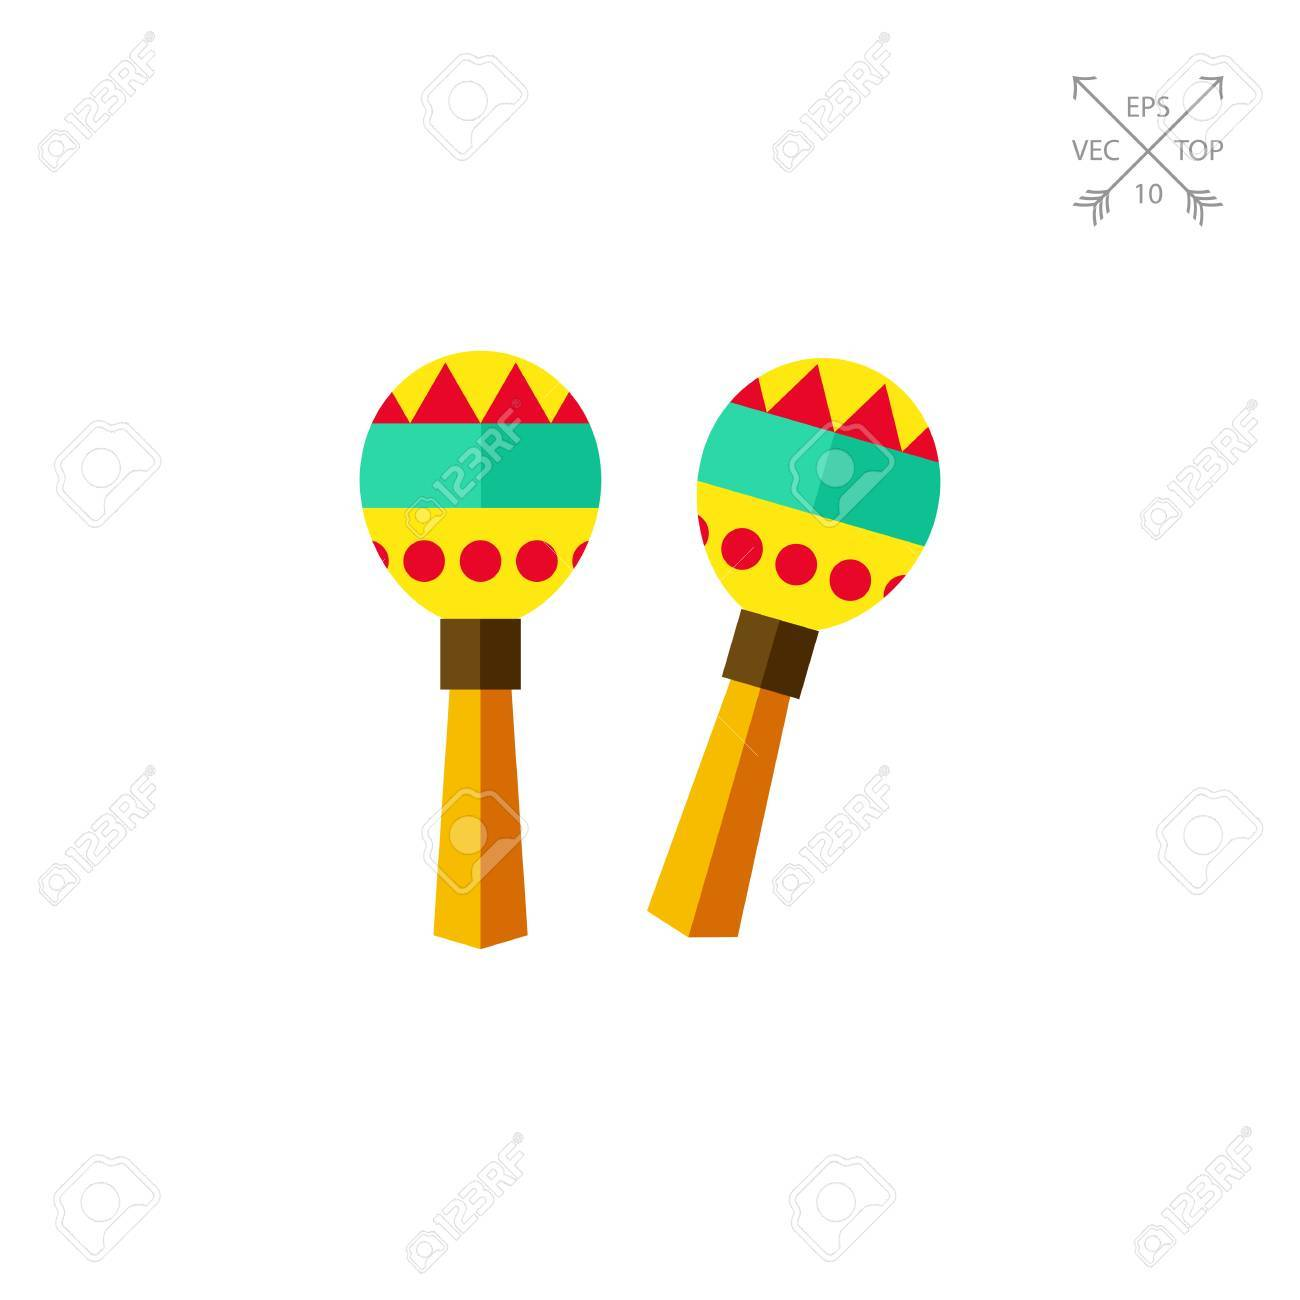 colorful maracas icon royalty free cliparts vectors and stock